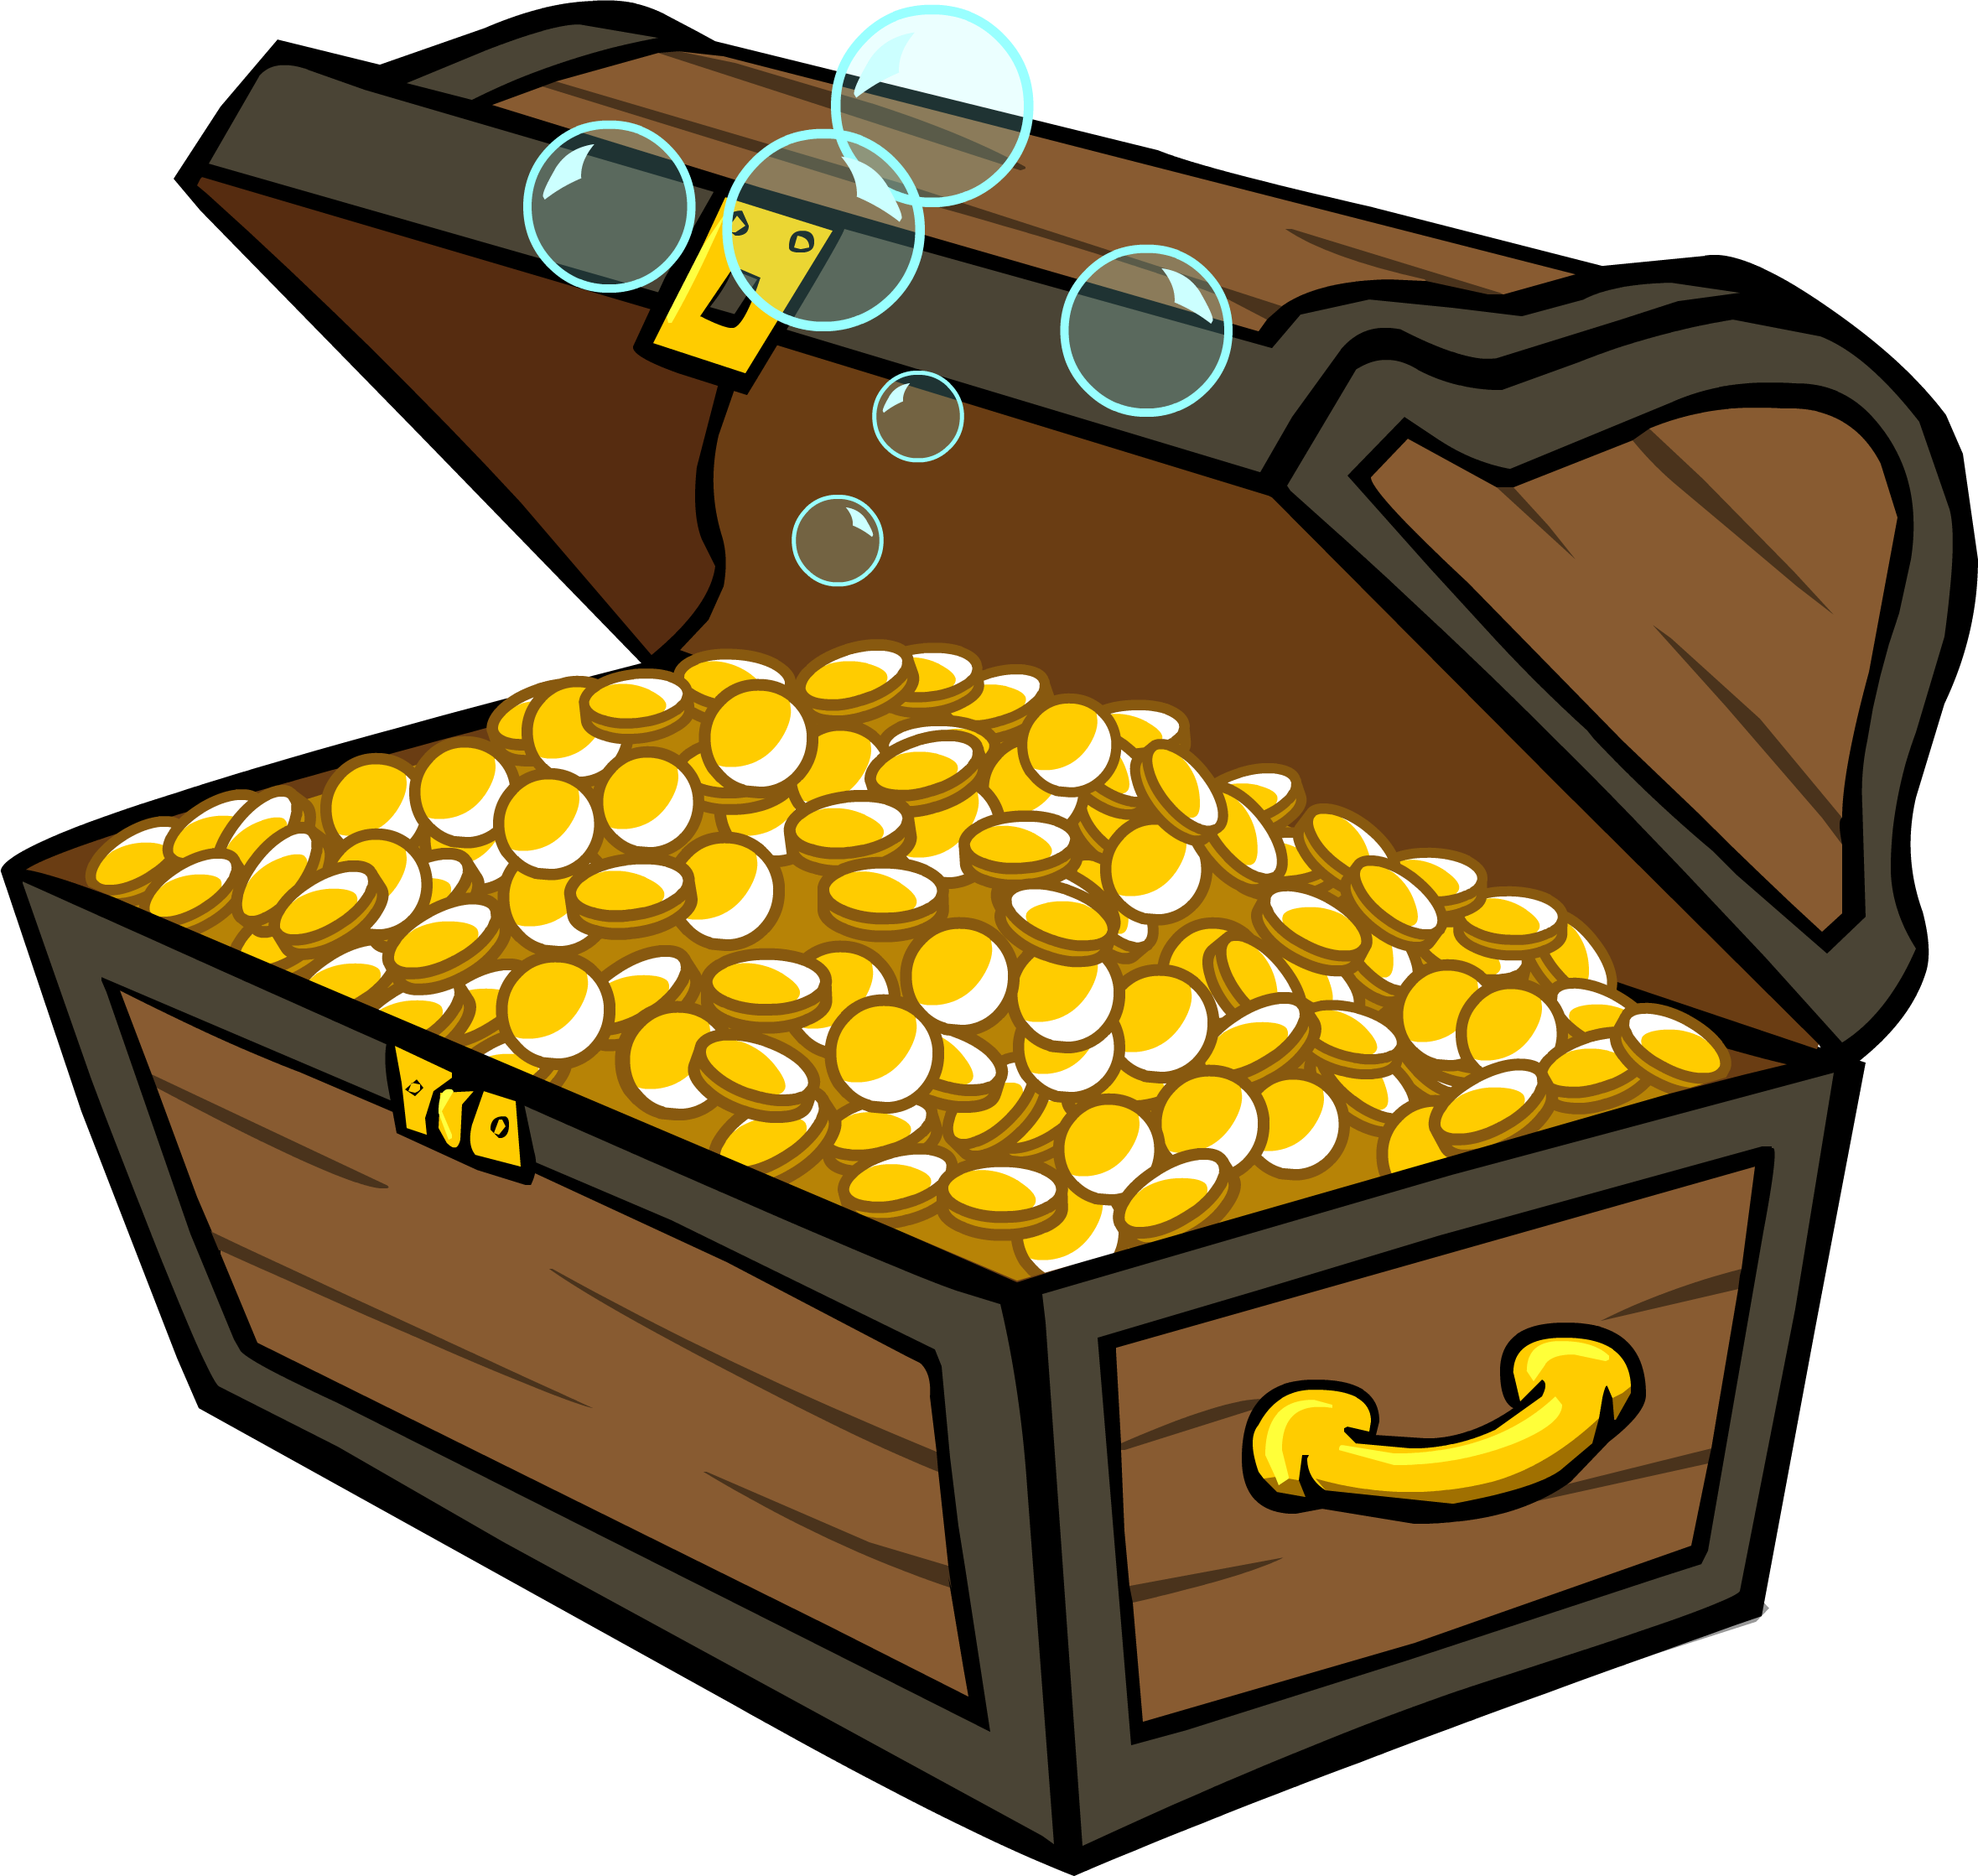 Treasure clipart community chest. Image id sprite png